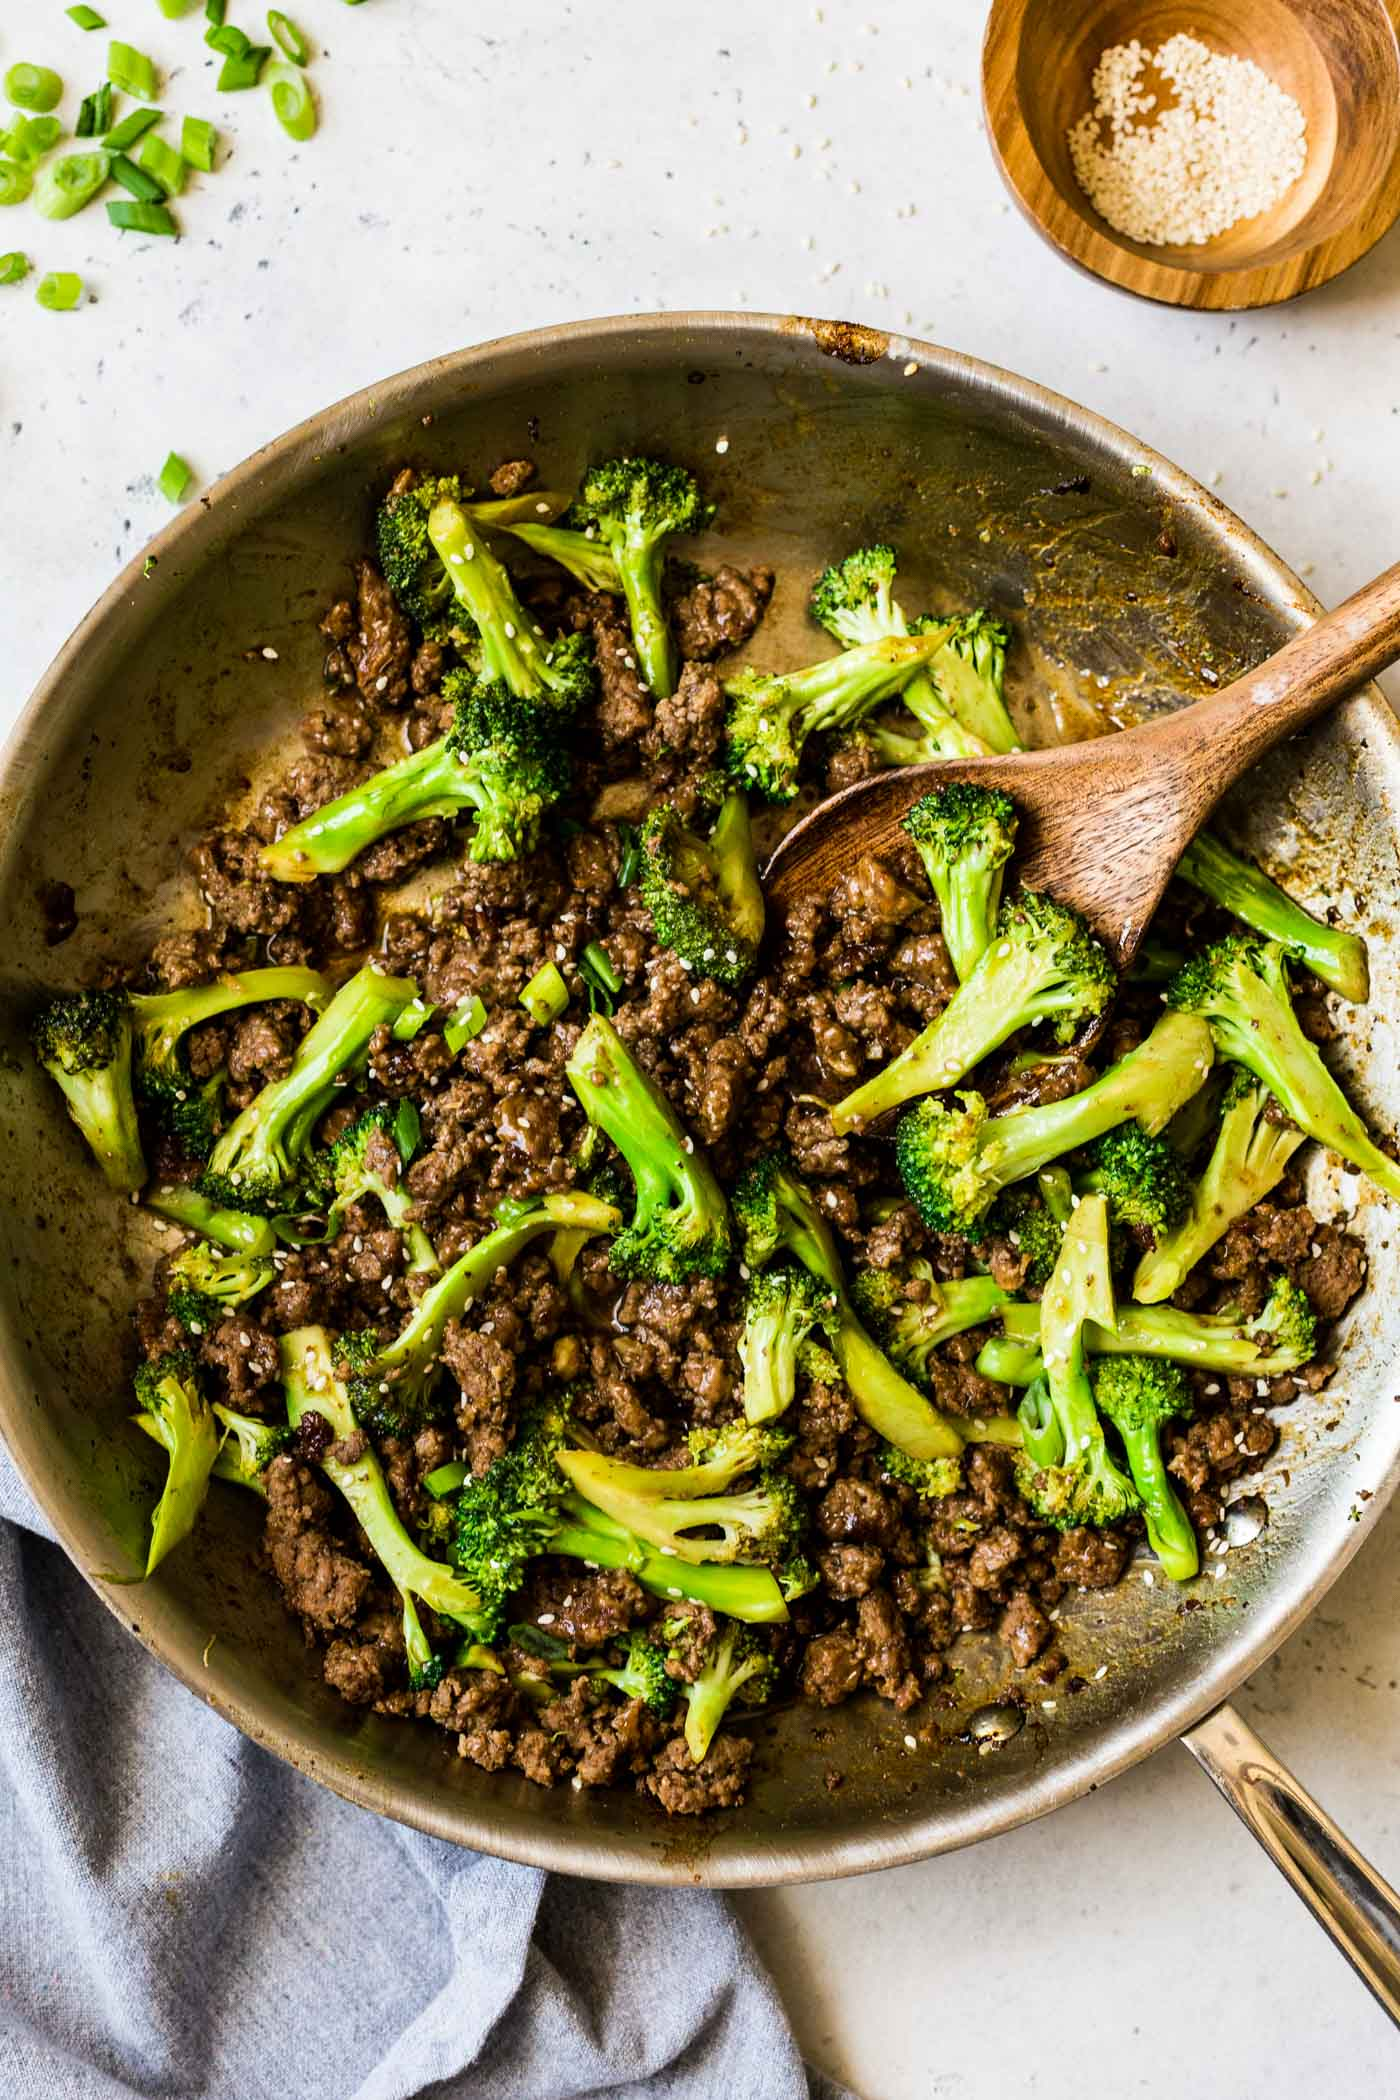 Ground Beef and Broccoli in Skillet